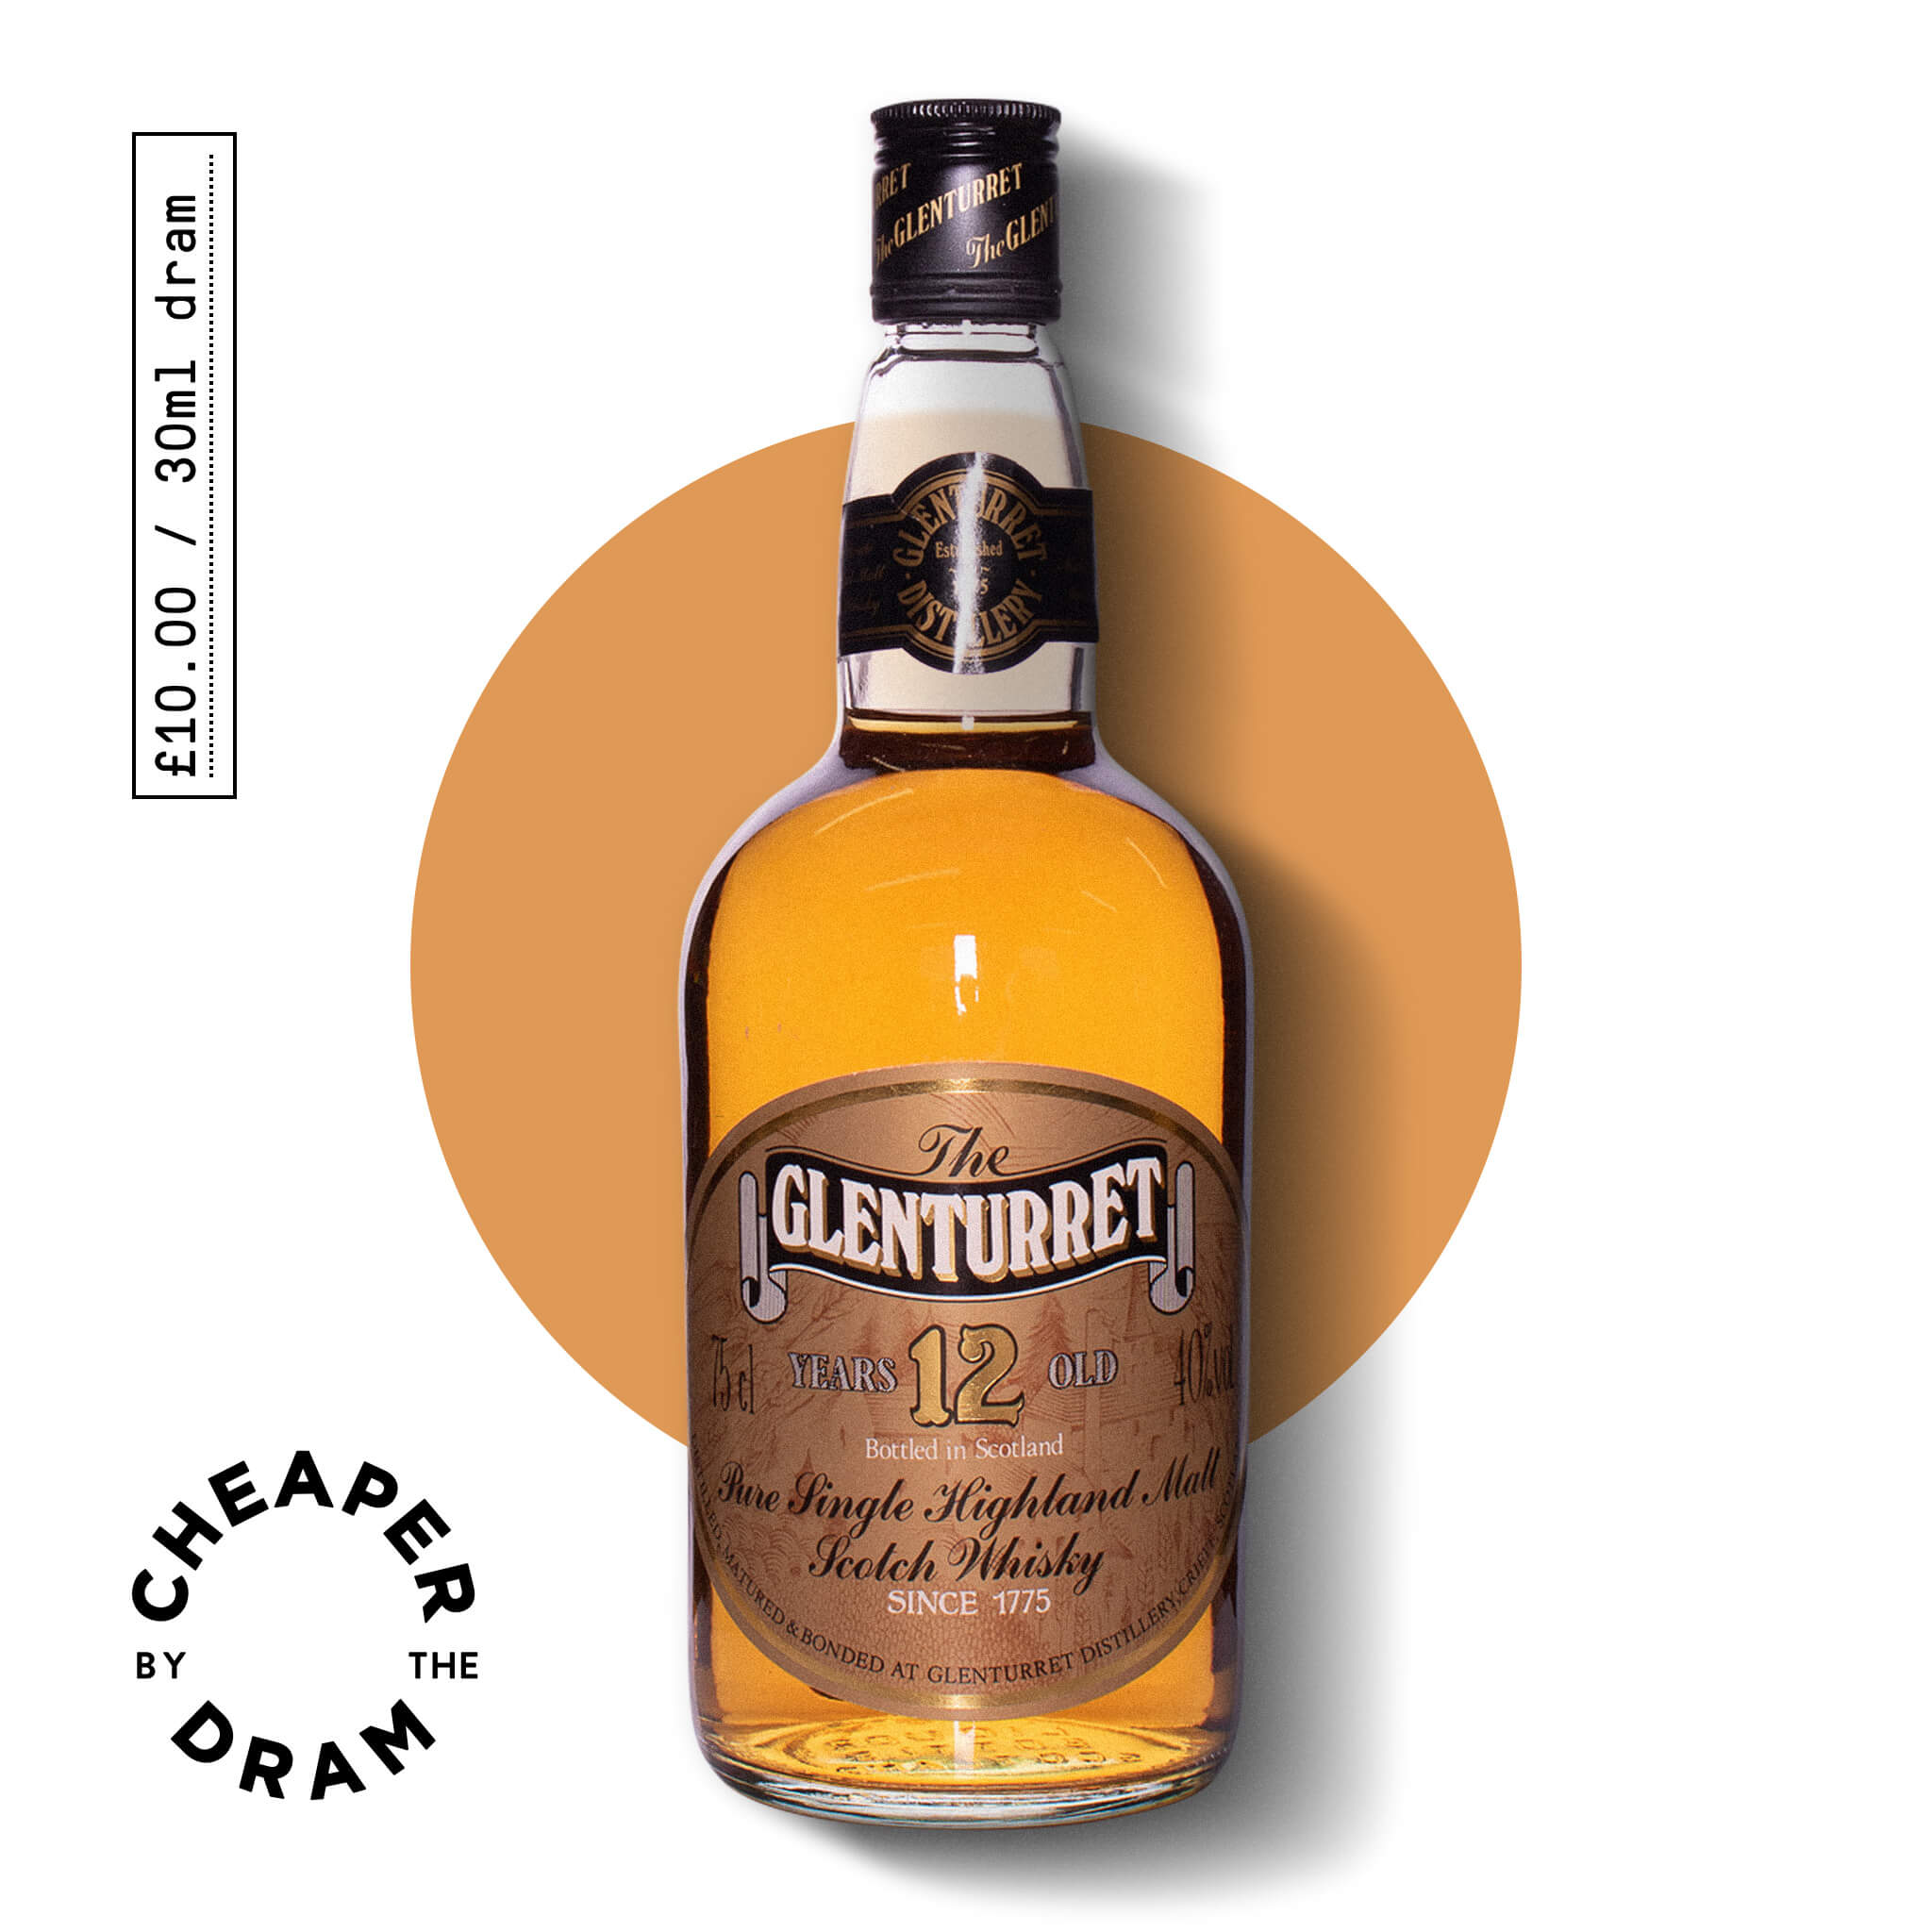 A bottle of CBTD NO.10 Glenturret 12 year old 1980s